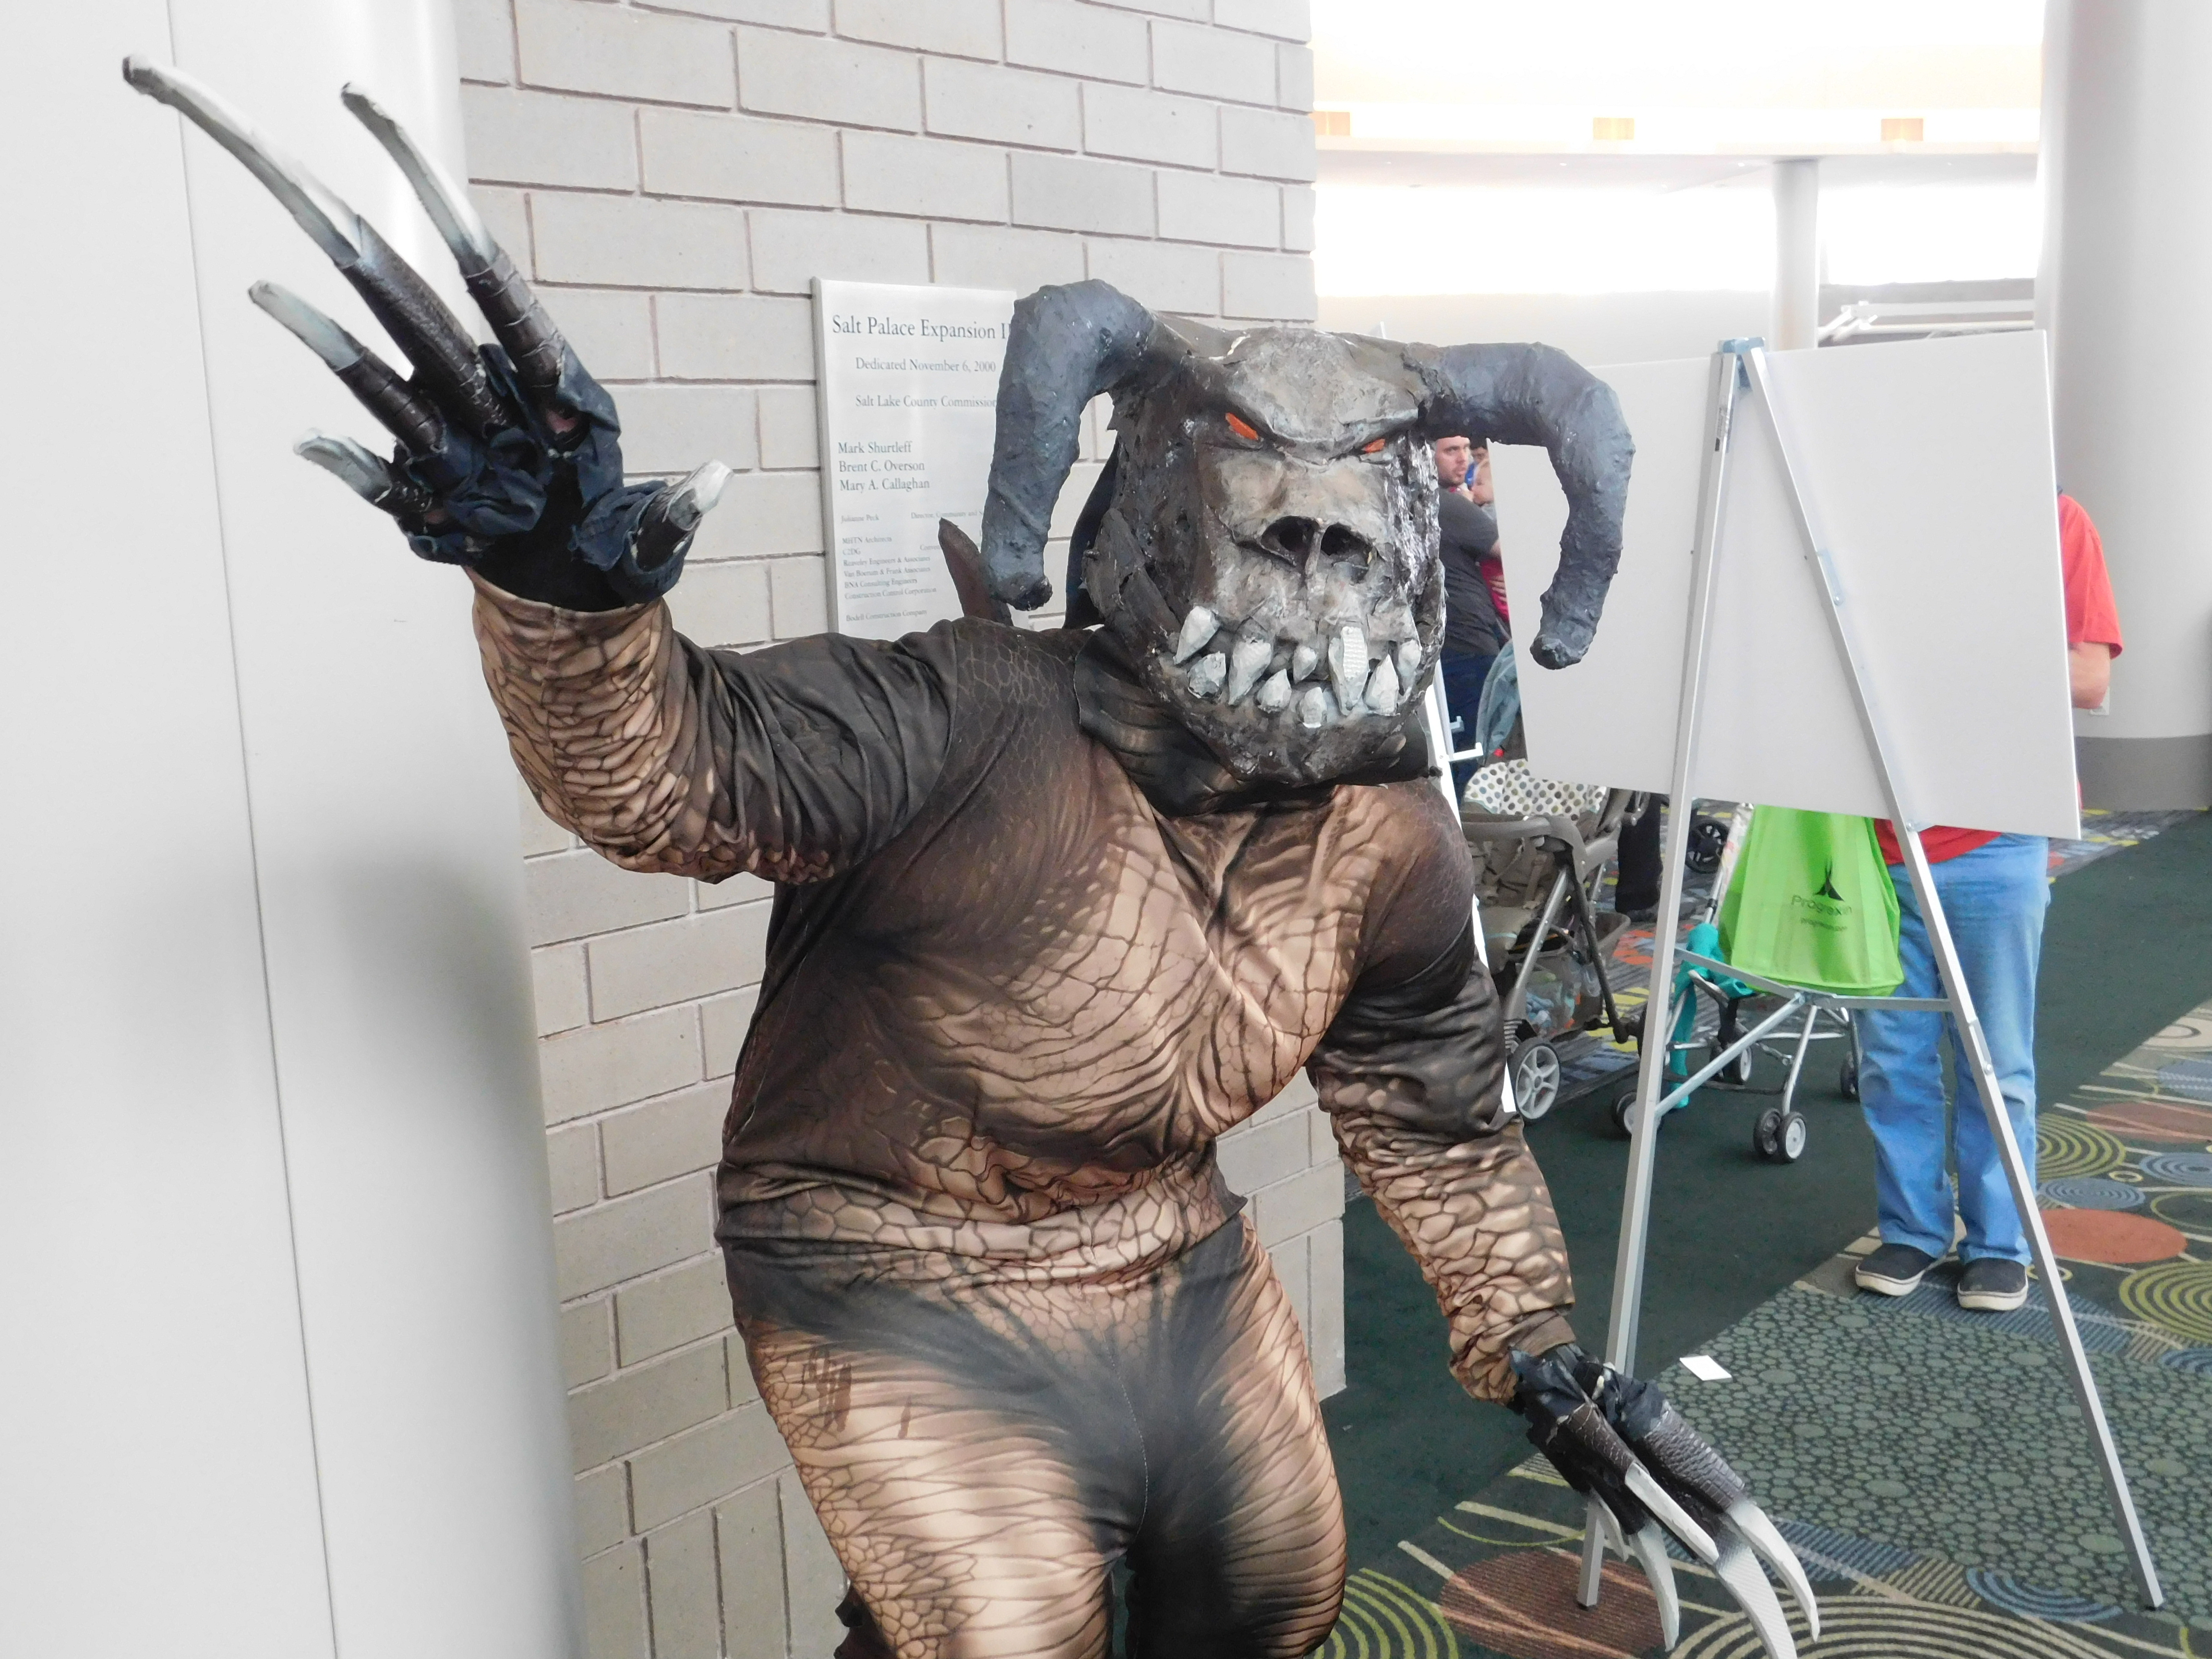 SLCCd2.062 - Even Salt Lake Comic Con isn't free of Deathclaws.